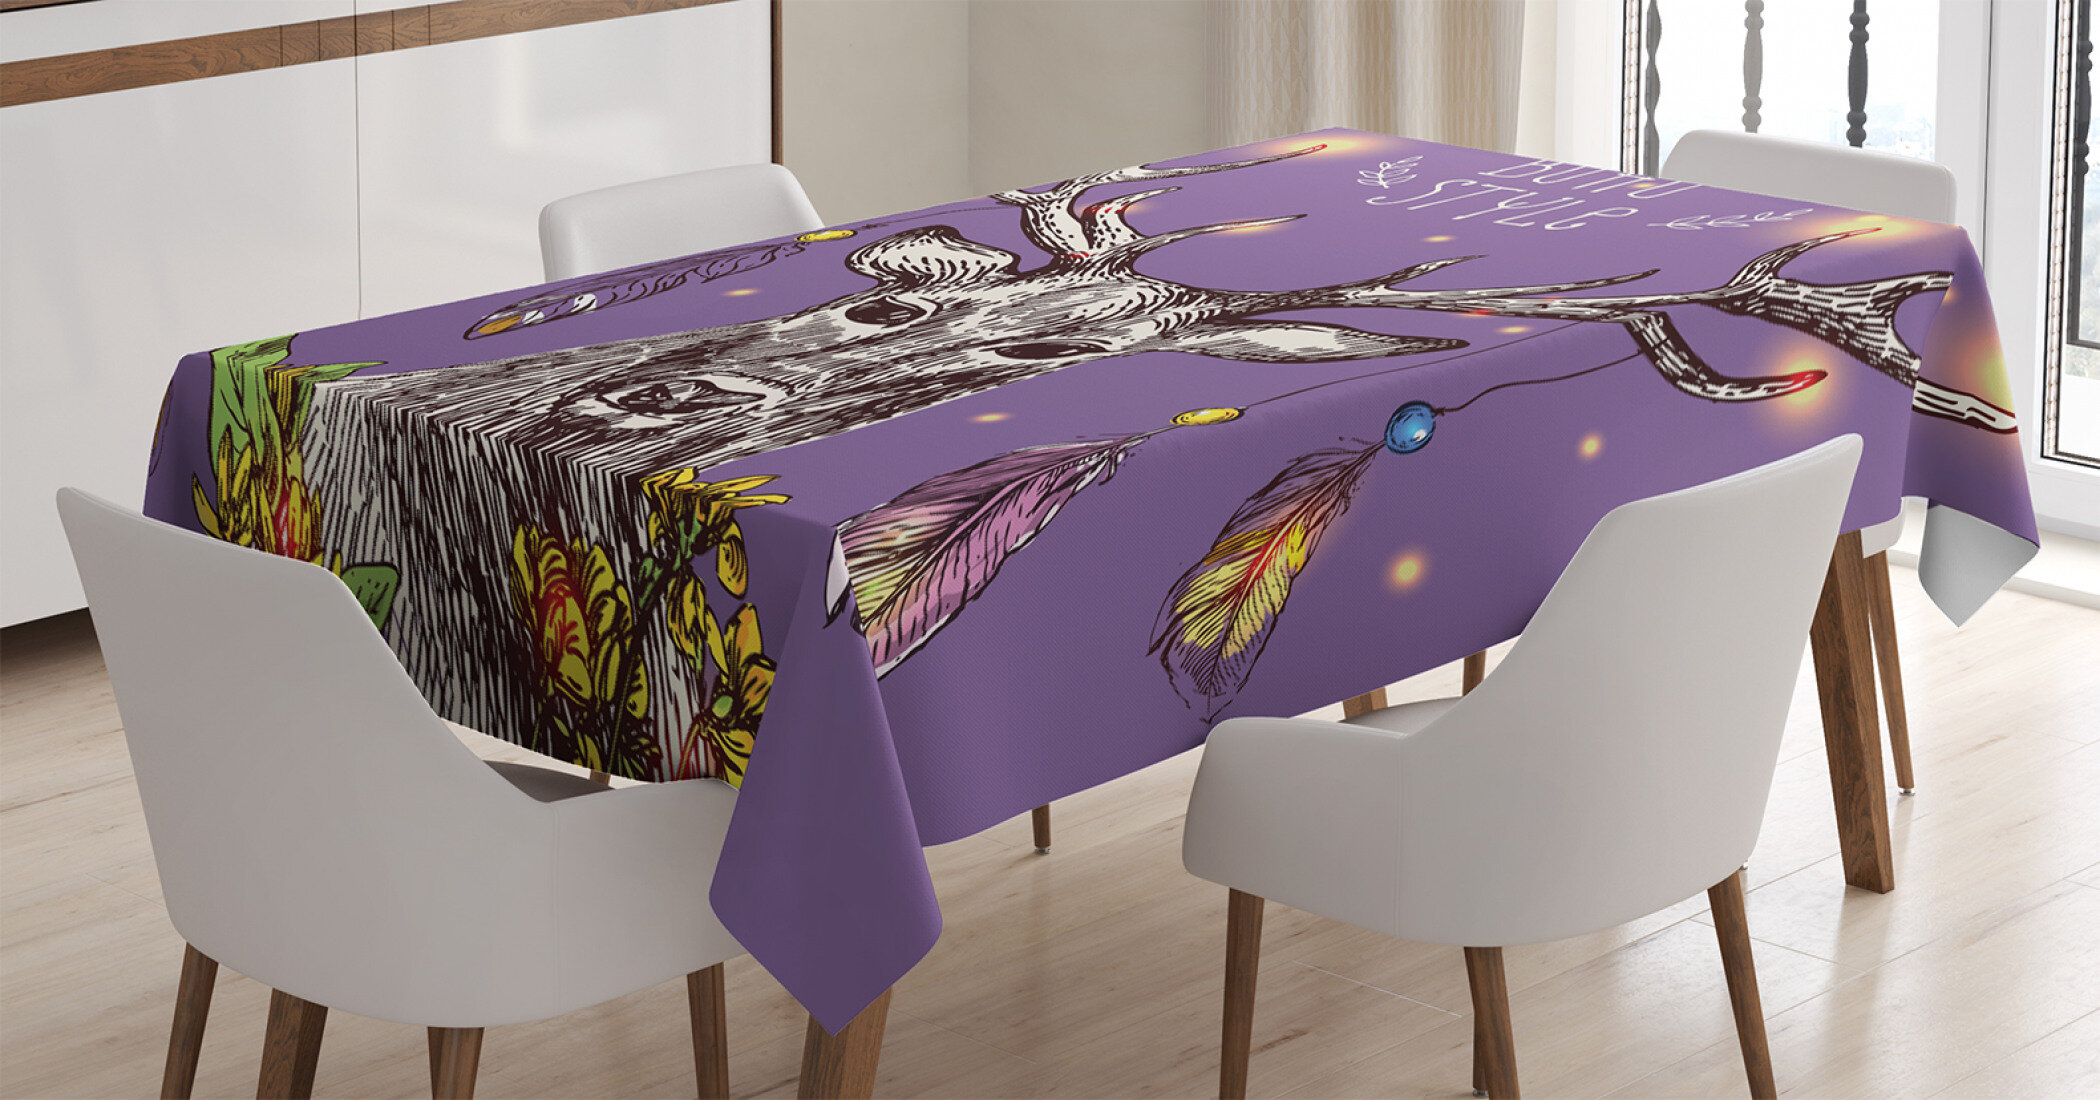 East Urban Home Ambesonne Boho Tablecloth Boho Hand Drawn Rein Deer With Gypsy Fashioned Elements On Antlers Unique Wild Creature Rectangular Table Cover For Dining Room Kitchen Decor 60 X 90 Purple Wayfair